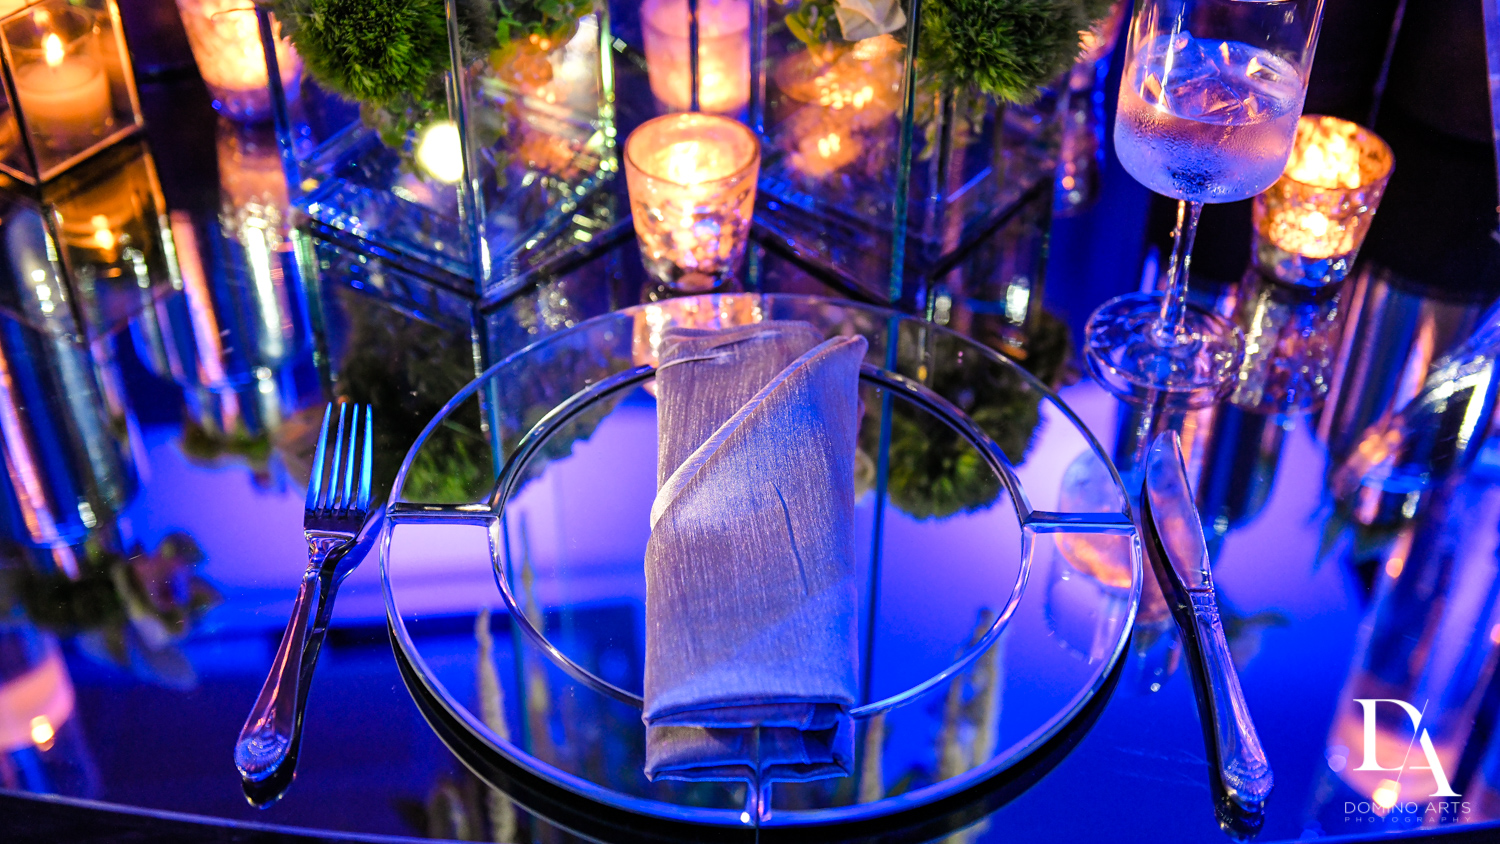 beautiful table setting at Modern All Blue Decor Bar Mitzvah at Temple Beth Am Pinecrest by Domino Arts Photography